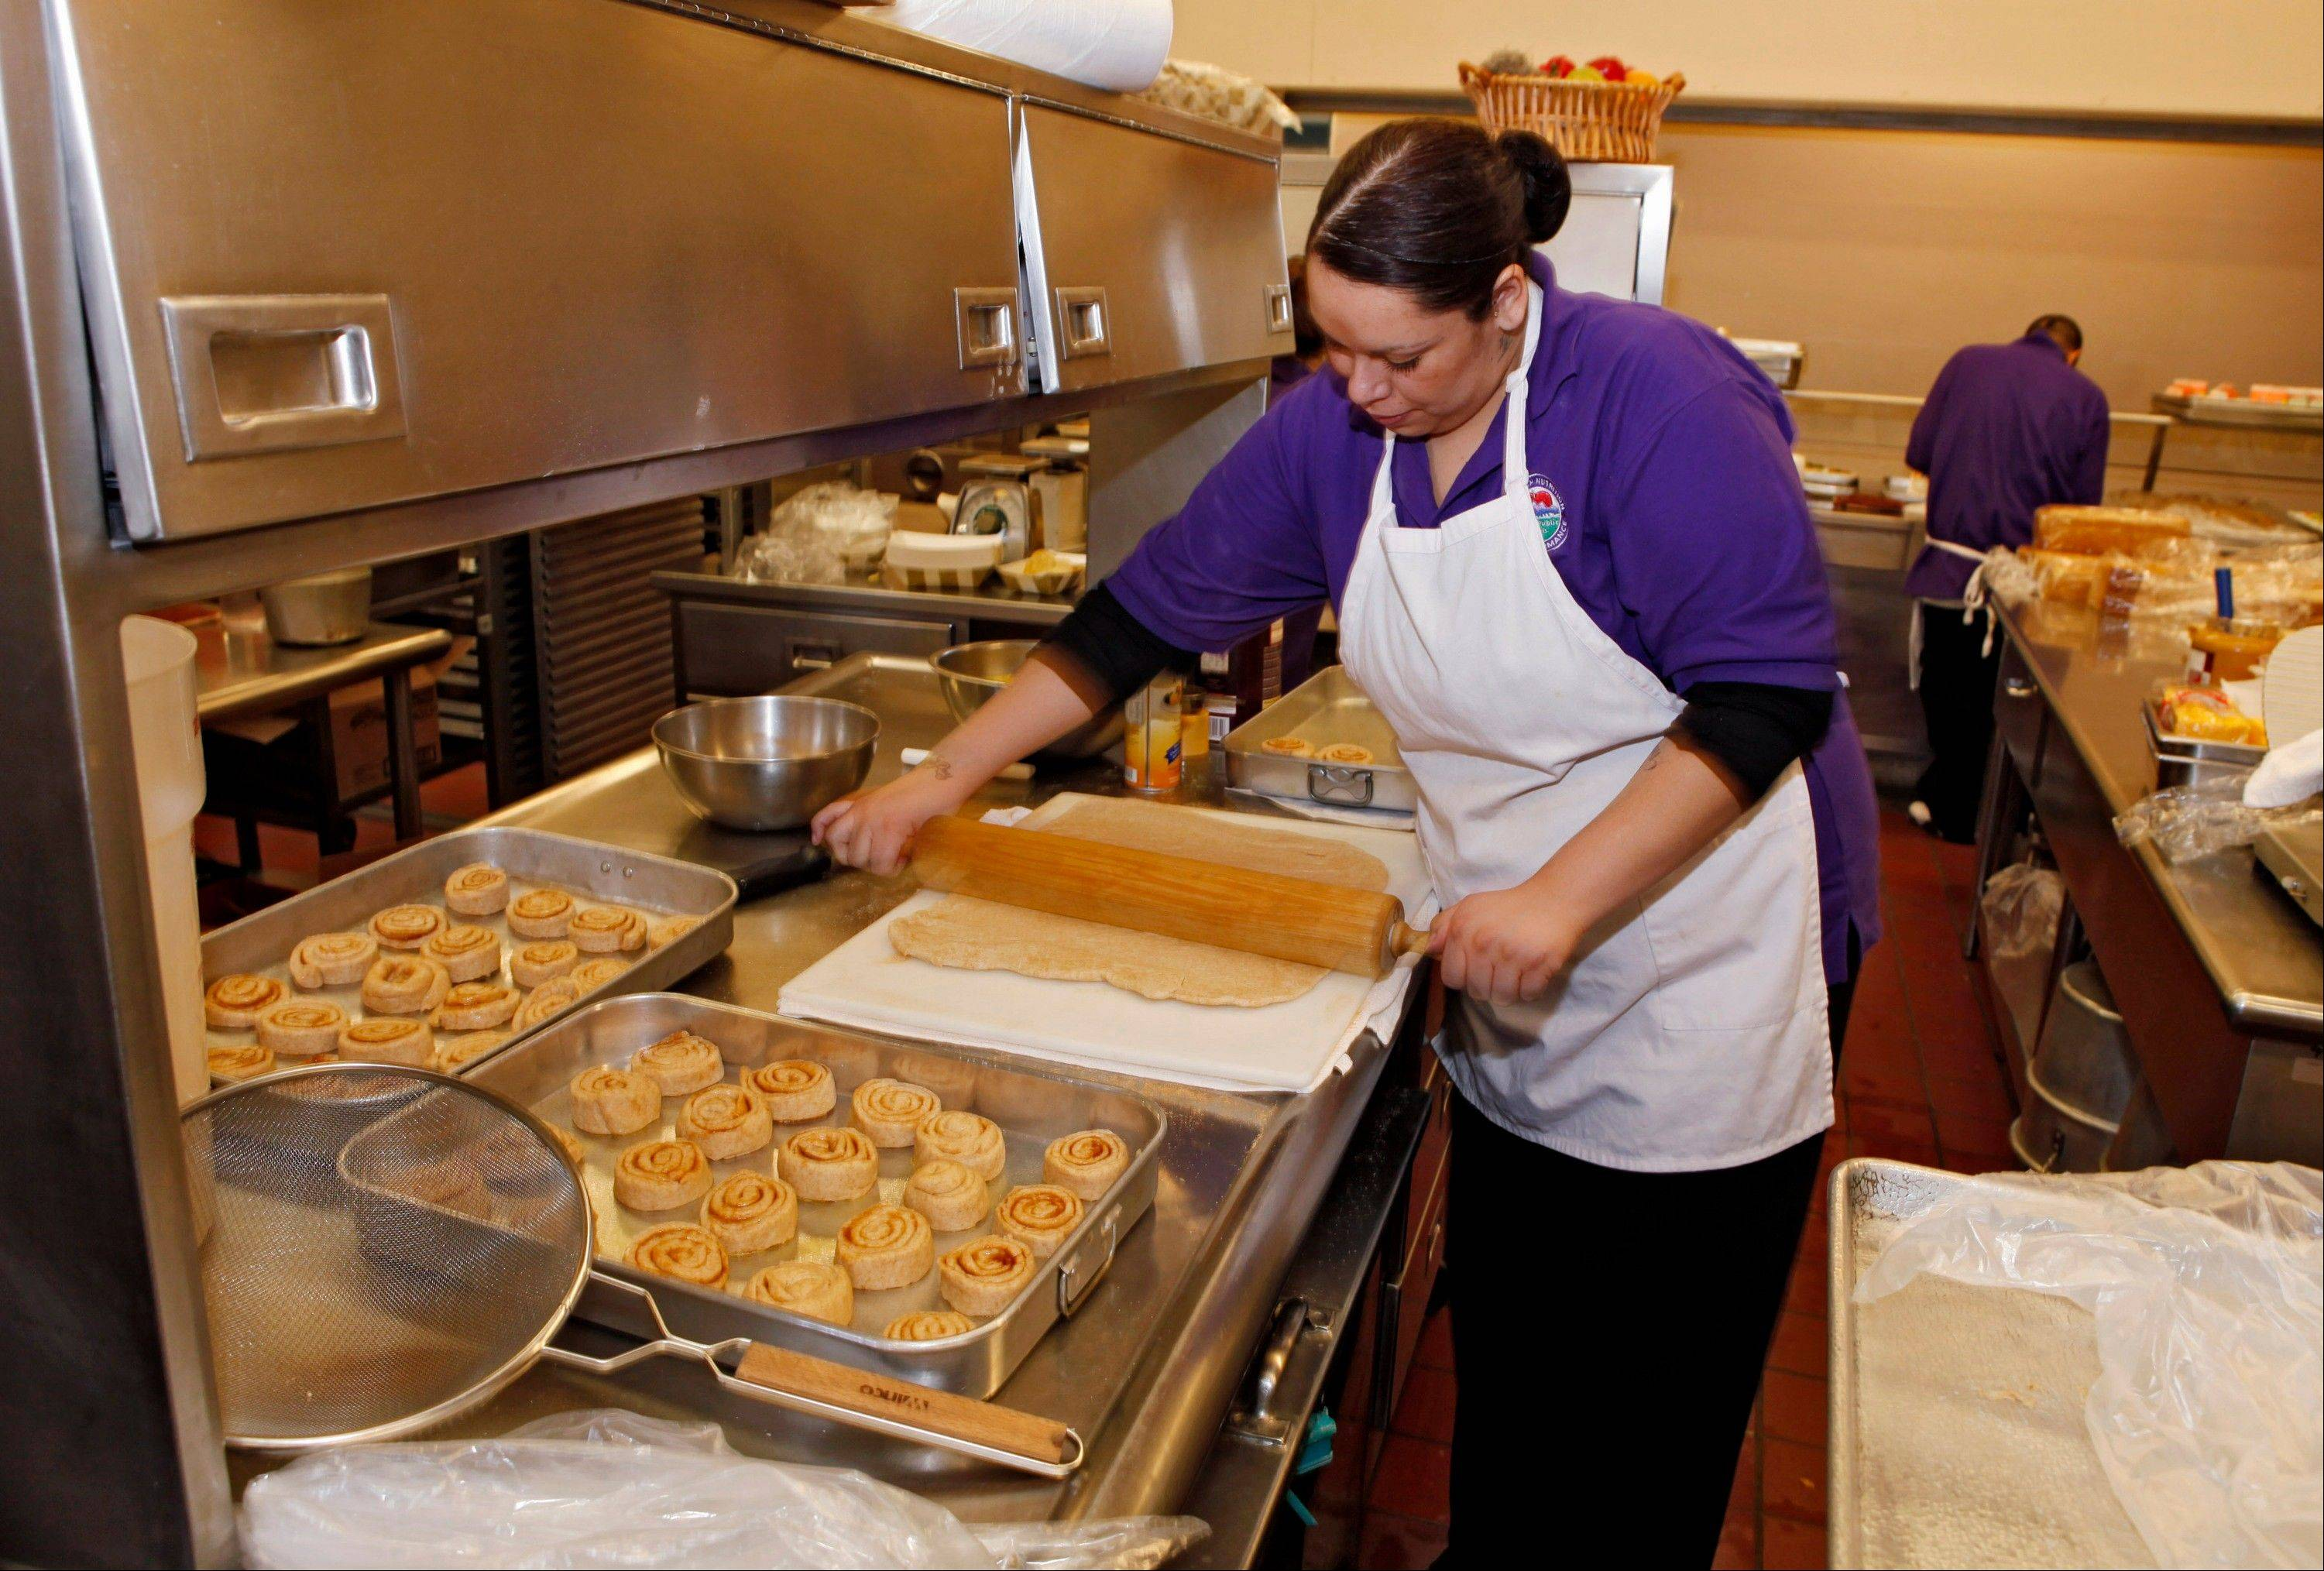 Alexes Garcia makes cinnamon rolls using apple sauce instead of trans fats. The FDA planned to announce Thursday it will require the food industry to gradually phase out all trans fats, saying they are a threat to people�s health.